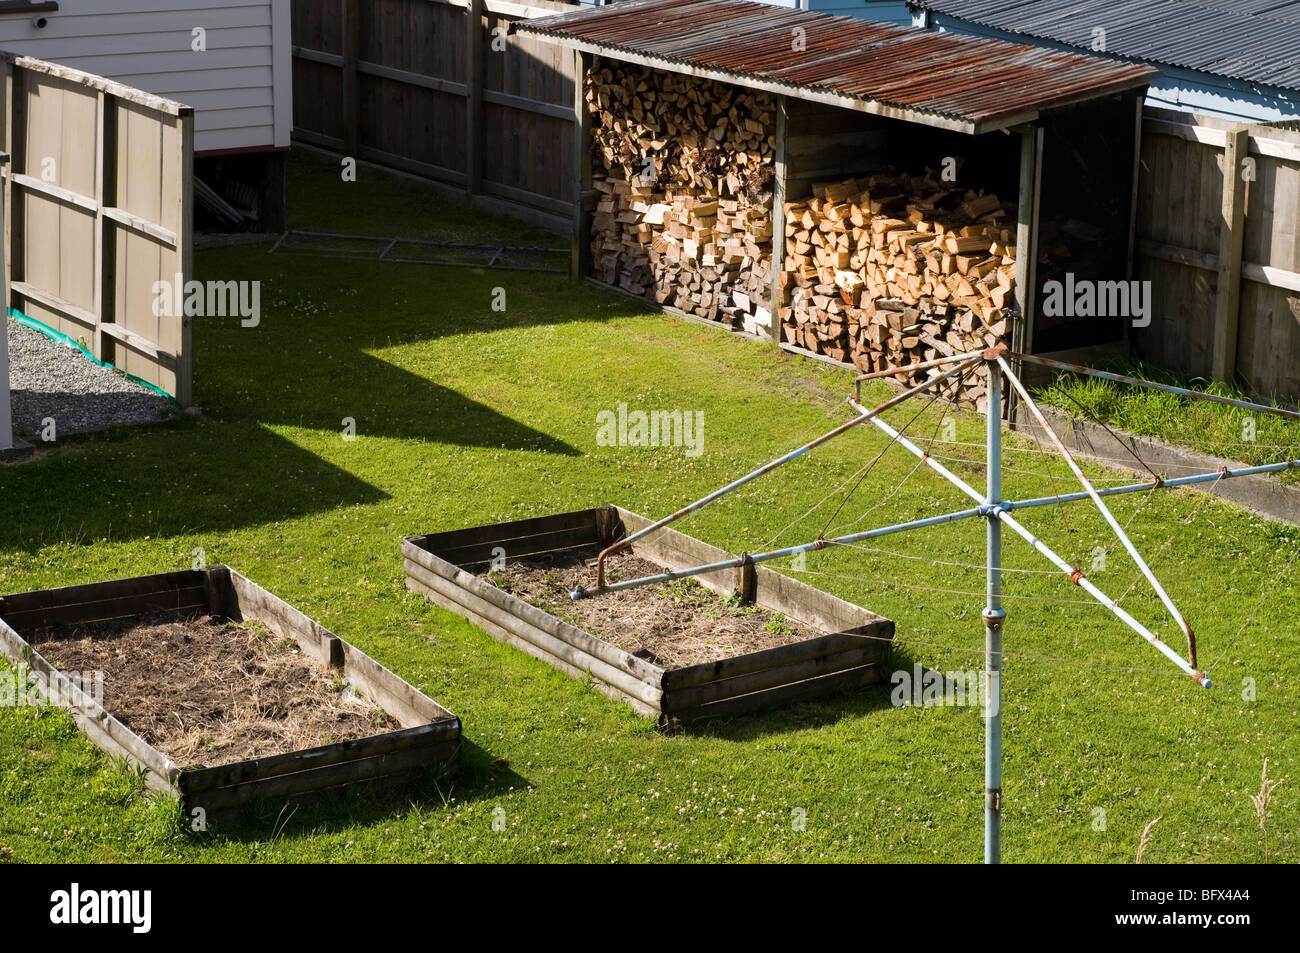 Tidy garden with empty planters and wood box - Stock Image